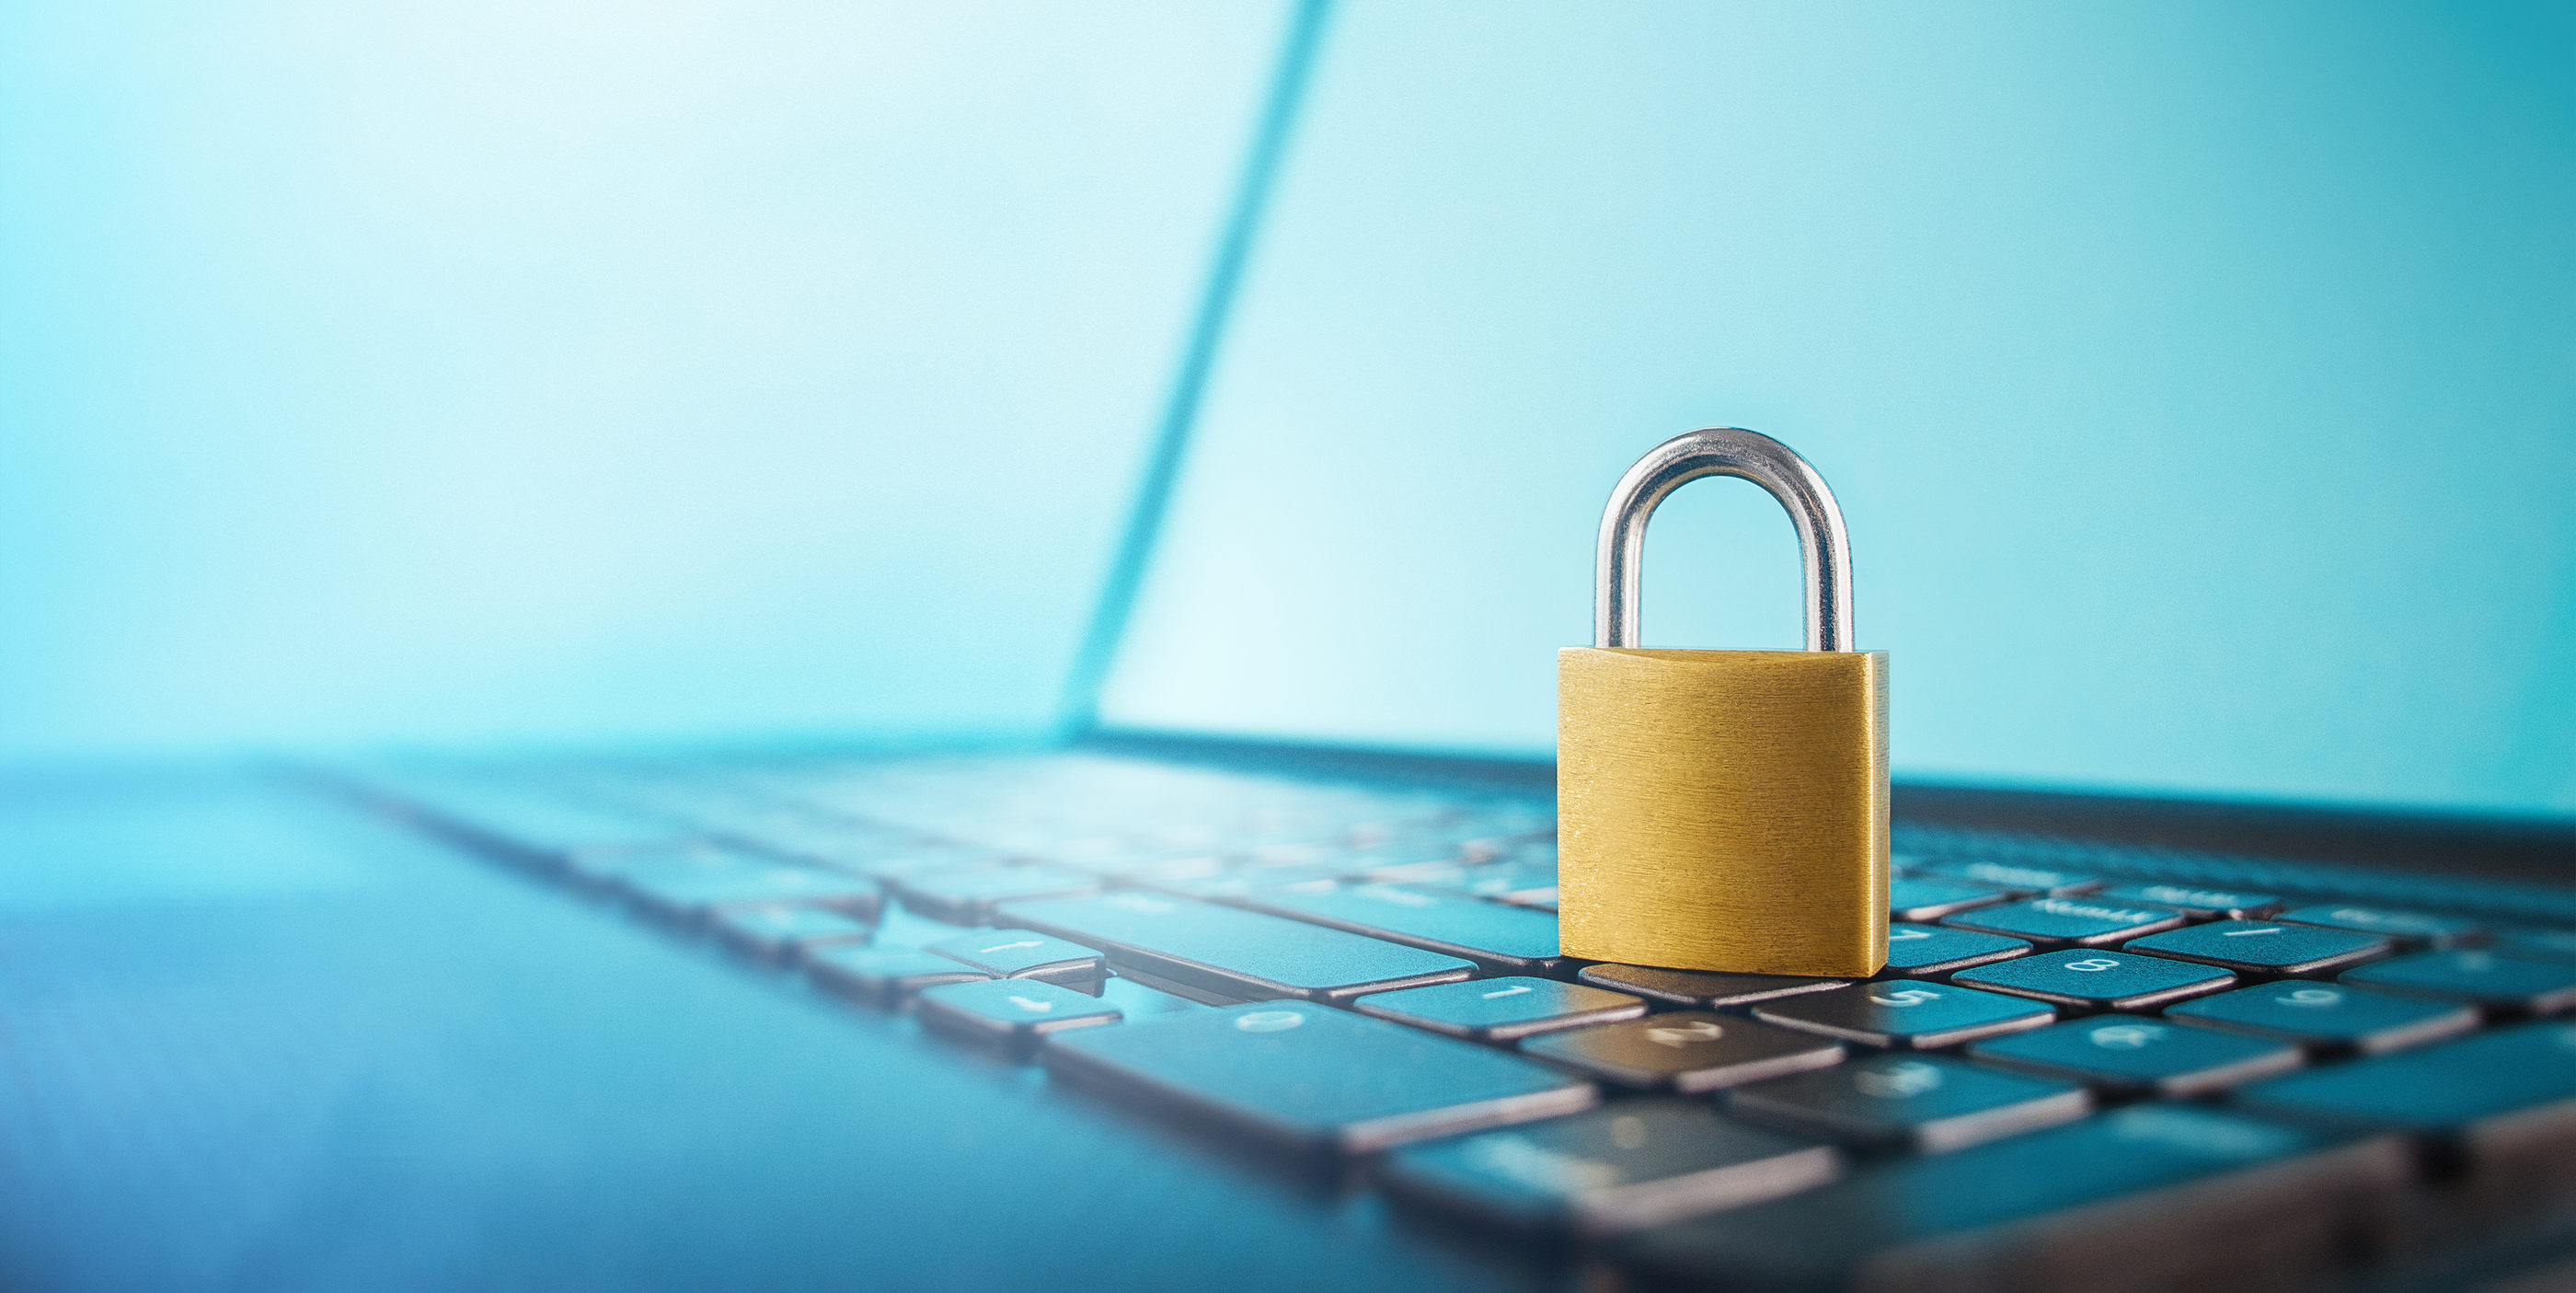 What Does it Mean to Have a Managed Network? Why It's Crucial for Data Security